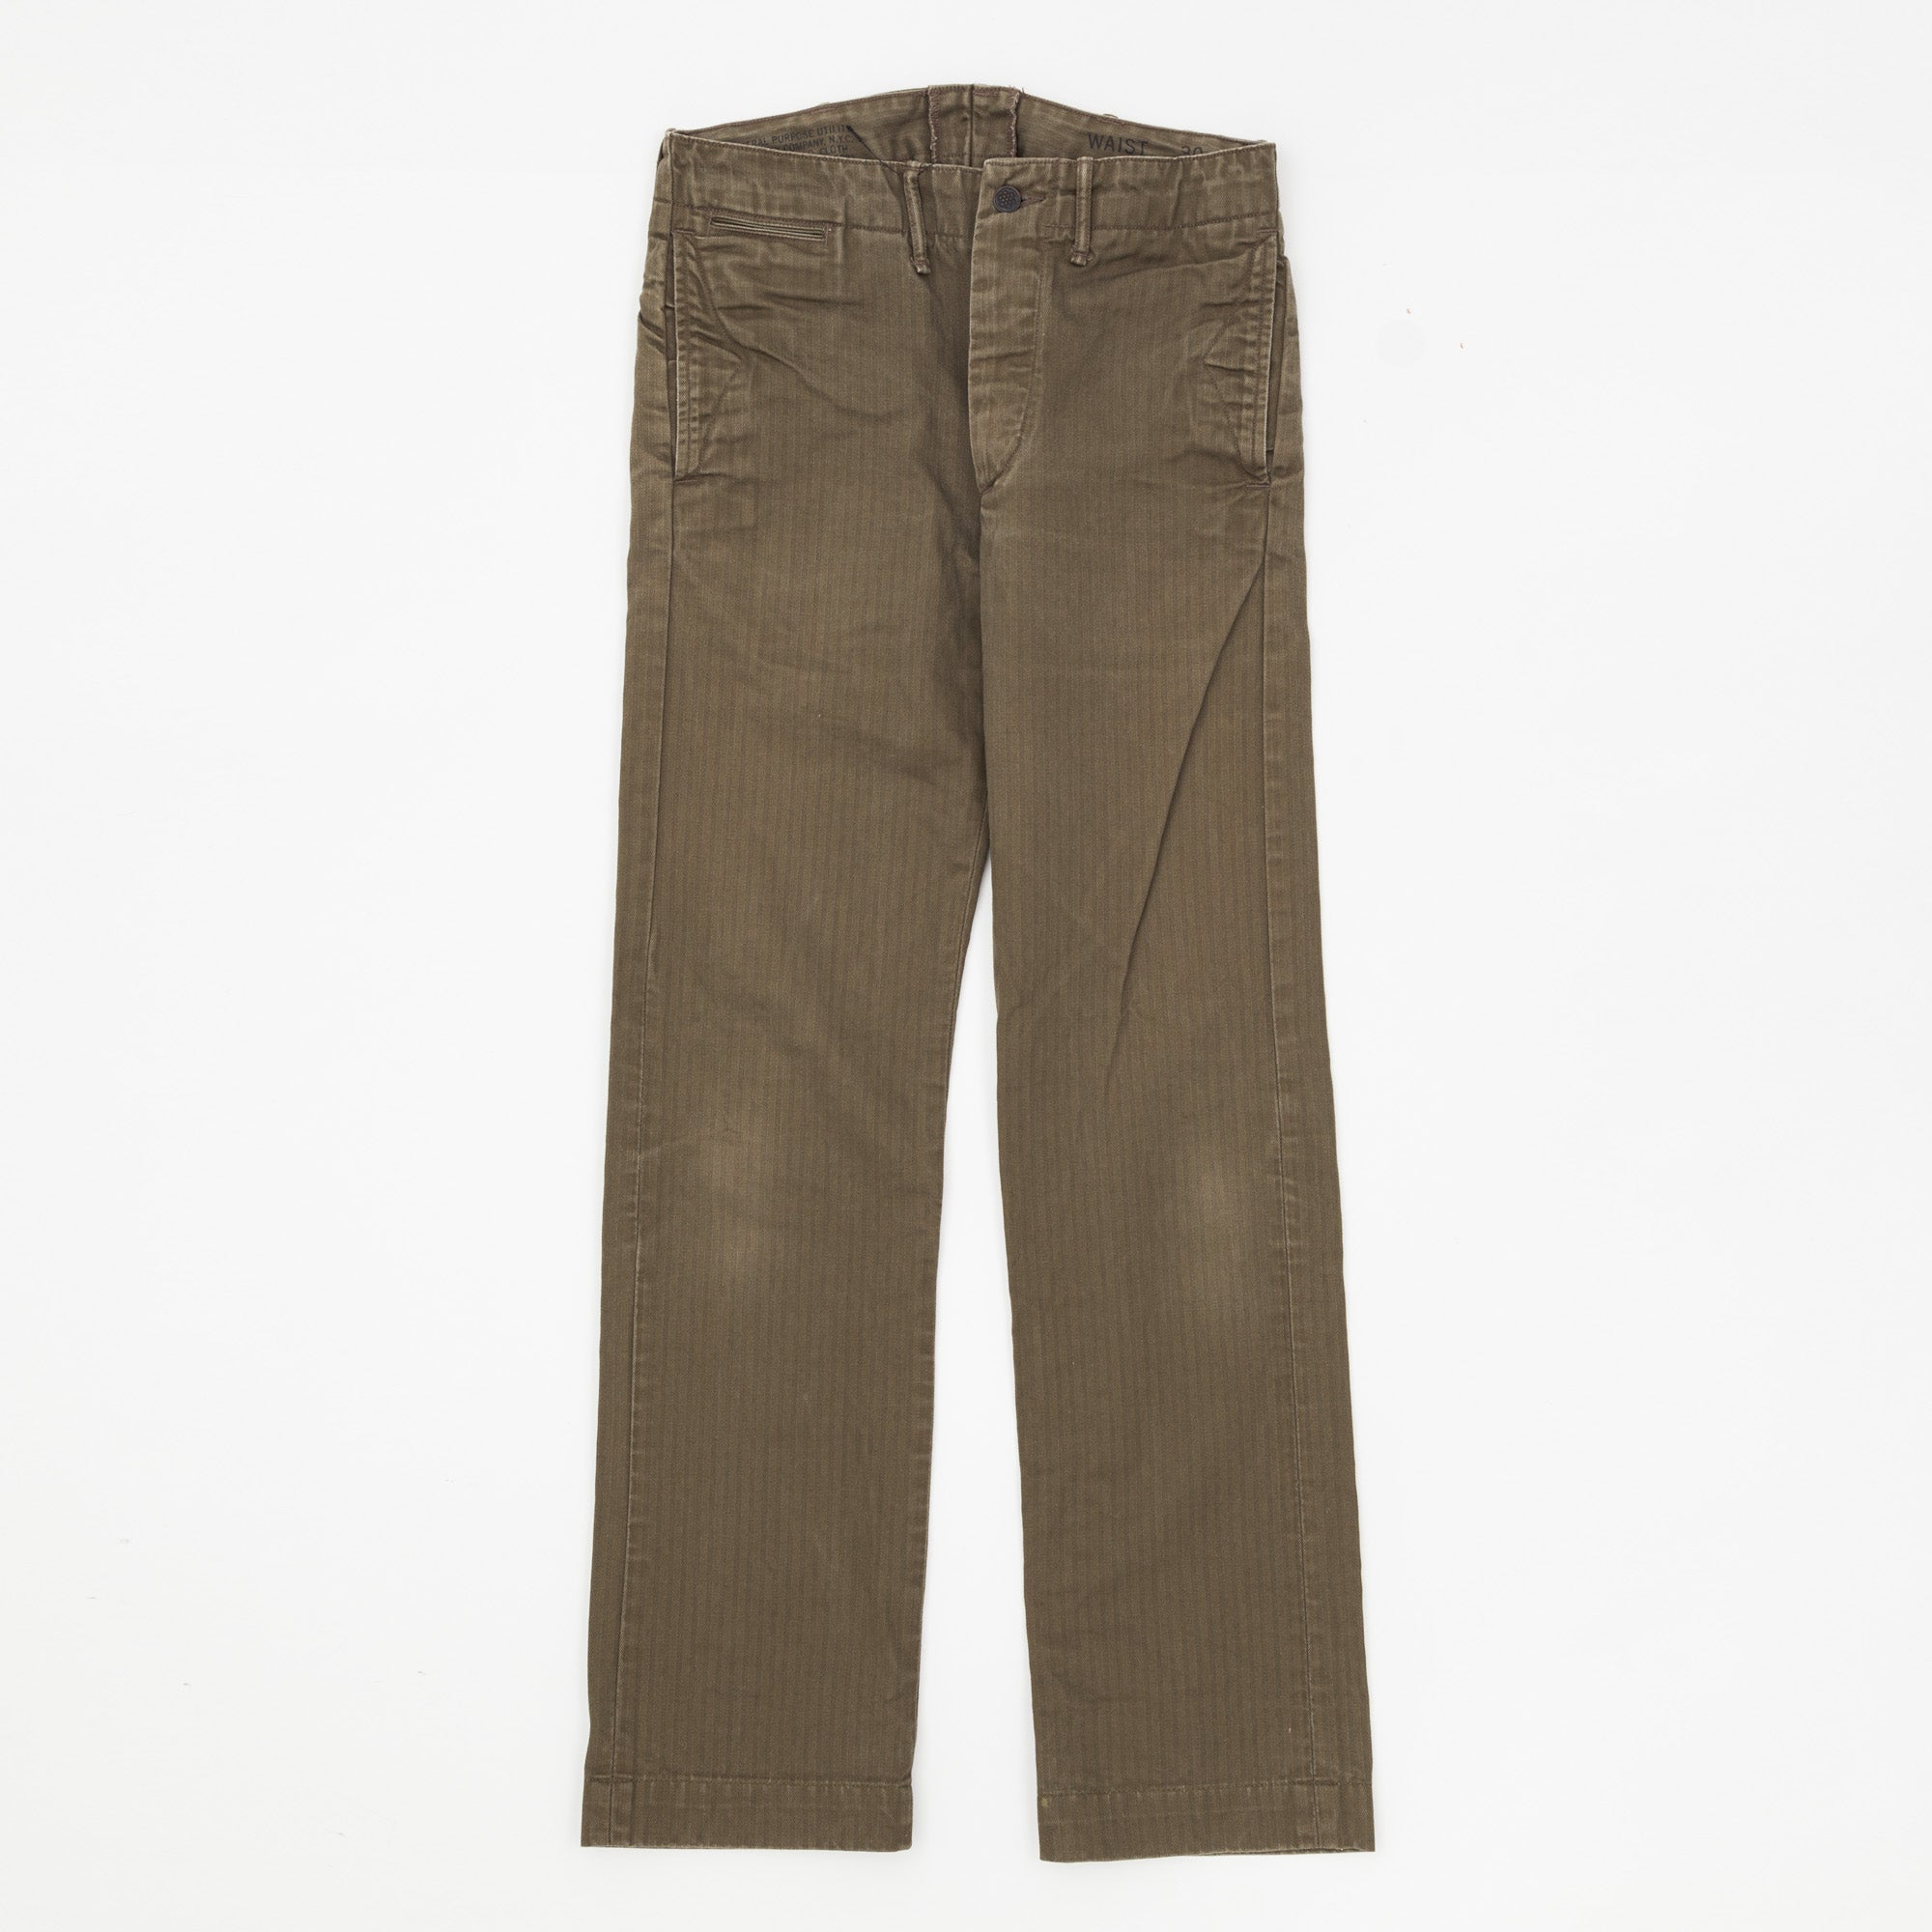 HBT Officers Field Trousers